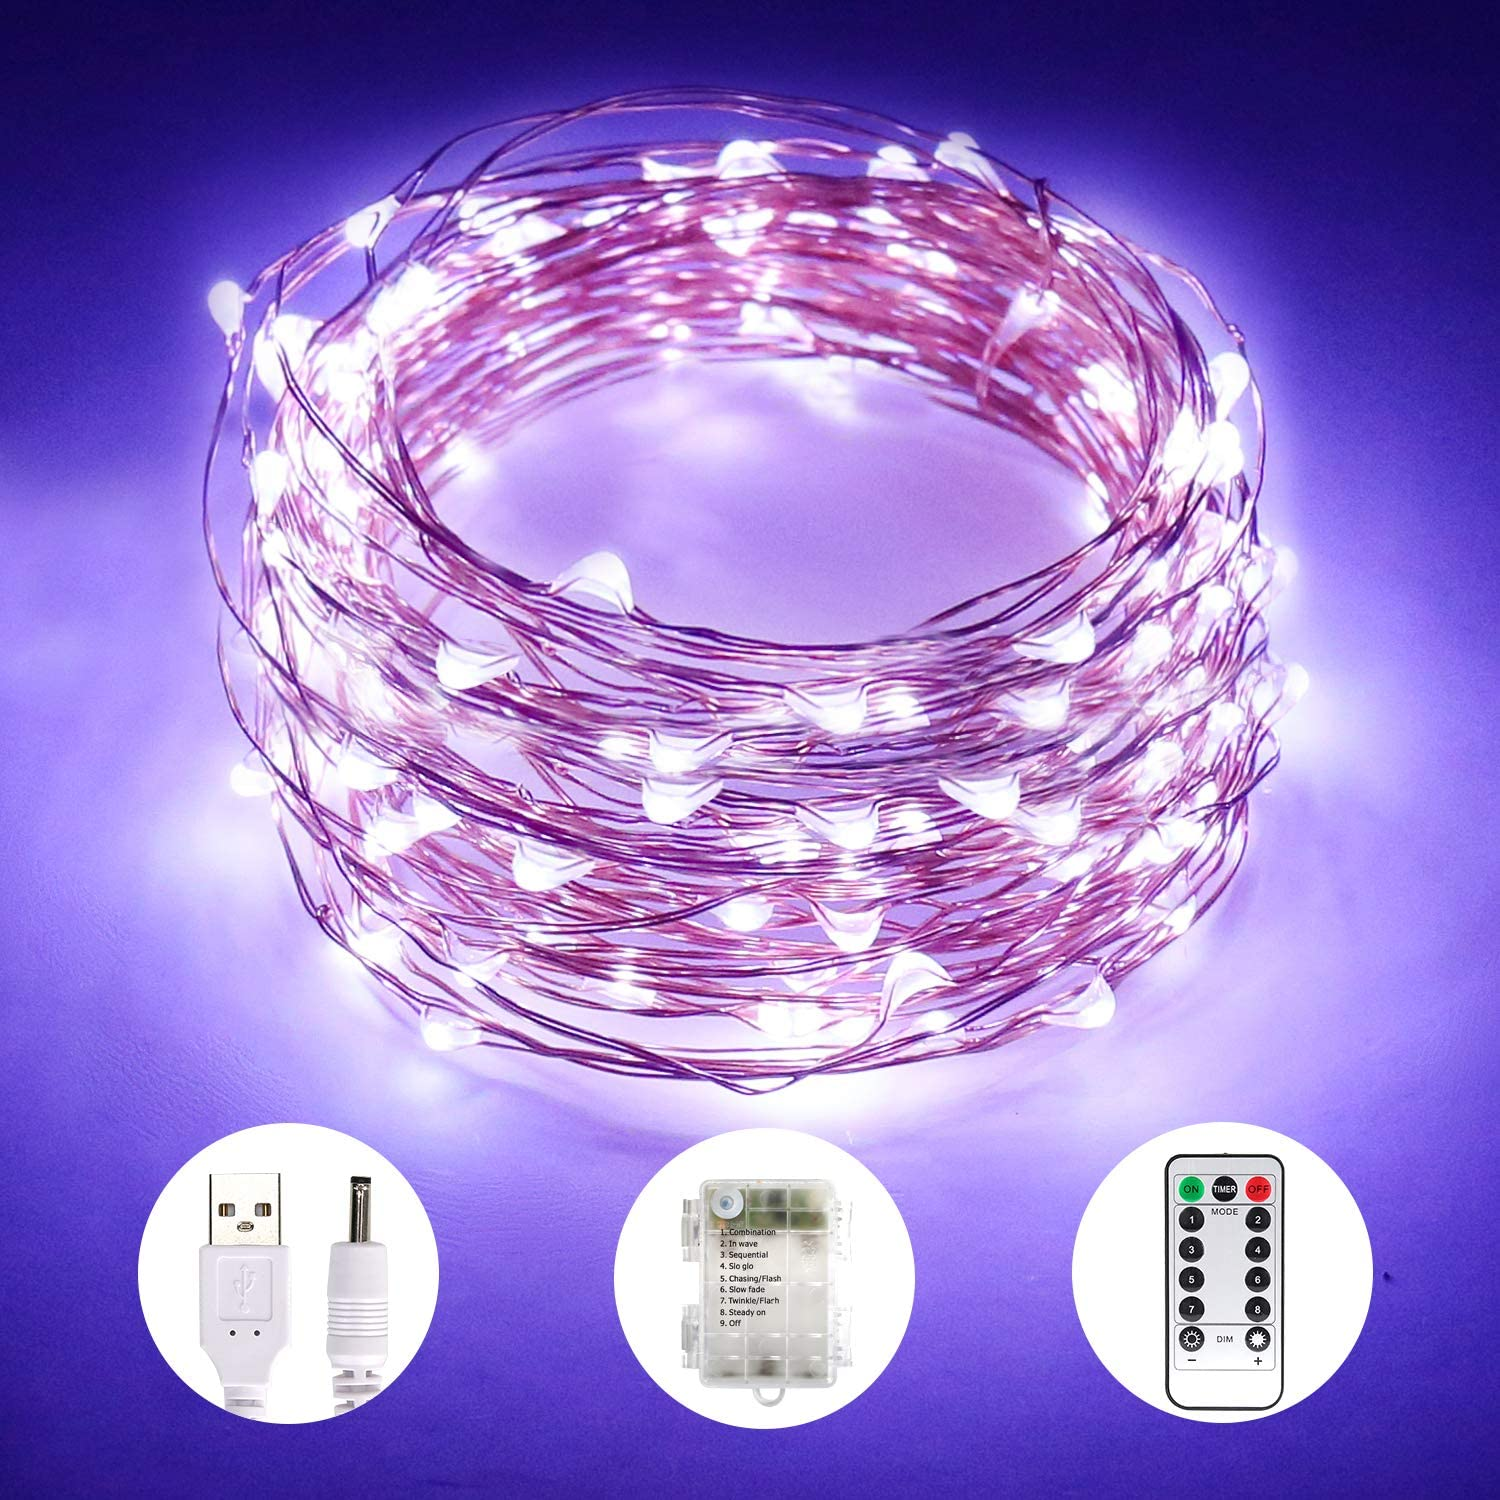 Aluan Fairy Lights 100 LED 33 FT Copper Wire Christmas Lights USB & Battery Powered Waterproof LED String Lights with 8 Modes for Indoor Outdoor Bedroom Wedding Party Patio Decor, Cool White